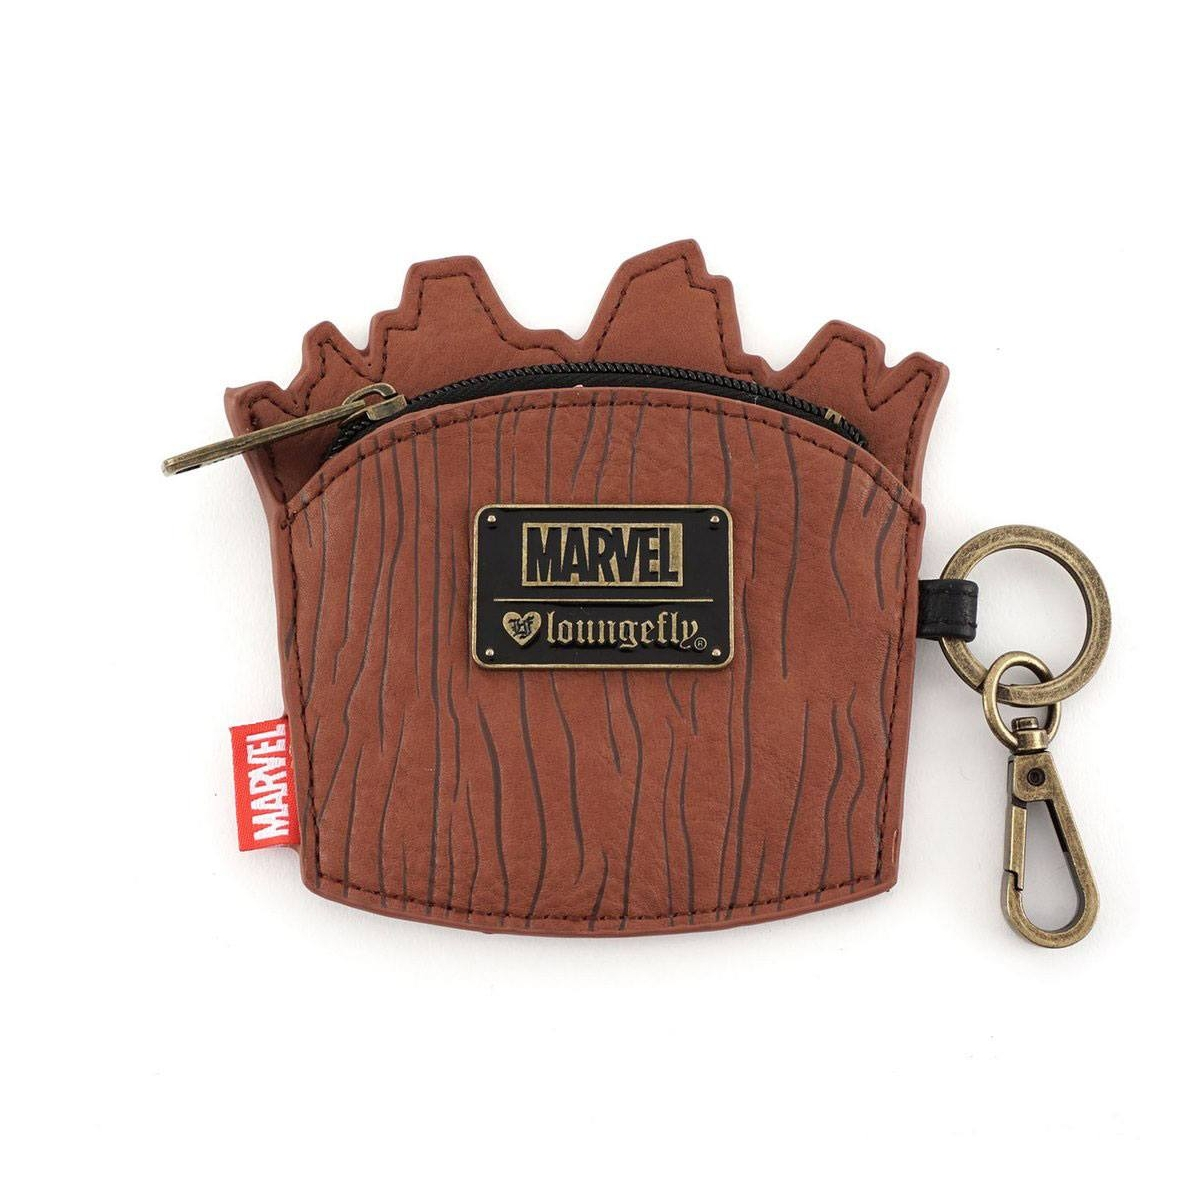 nouveau style 07c99 e132a Marvel - Porte-monnaie Groot (By Loungefly)